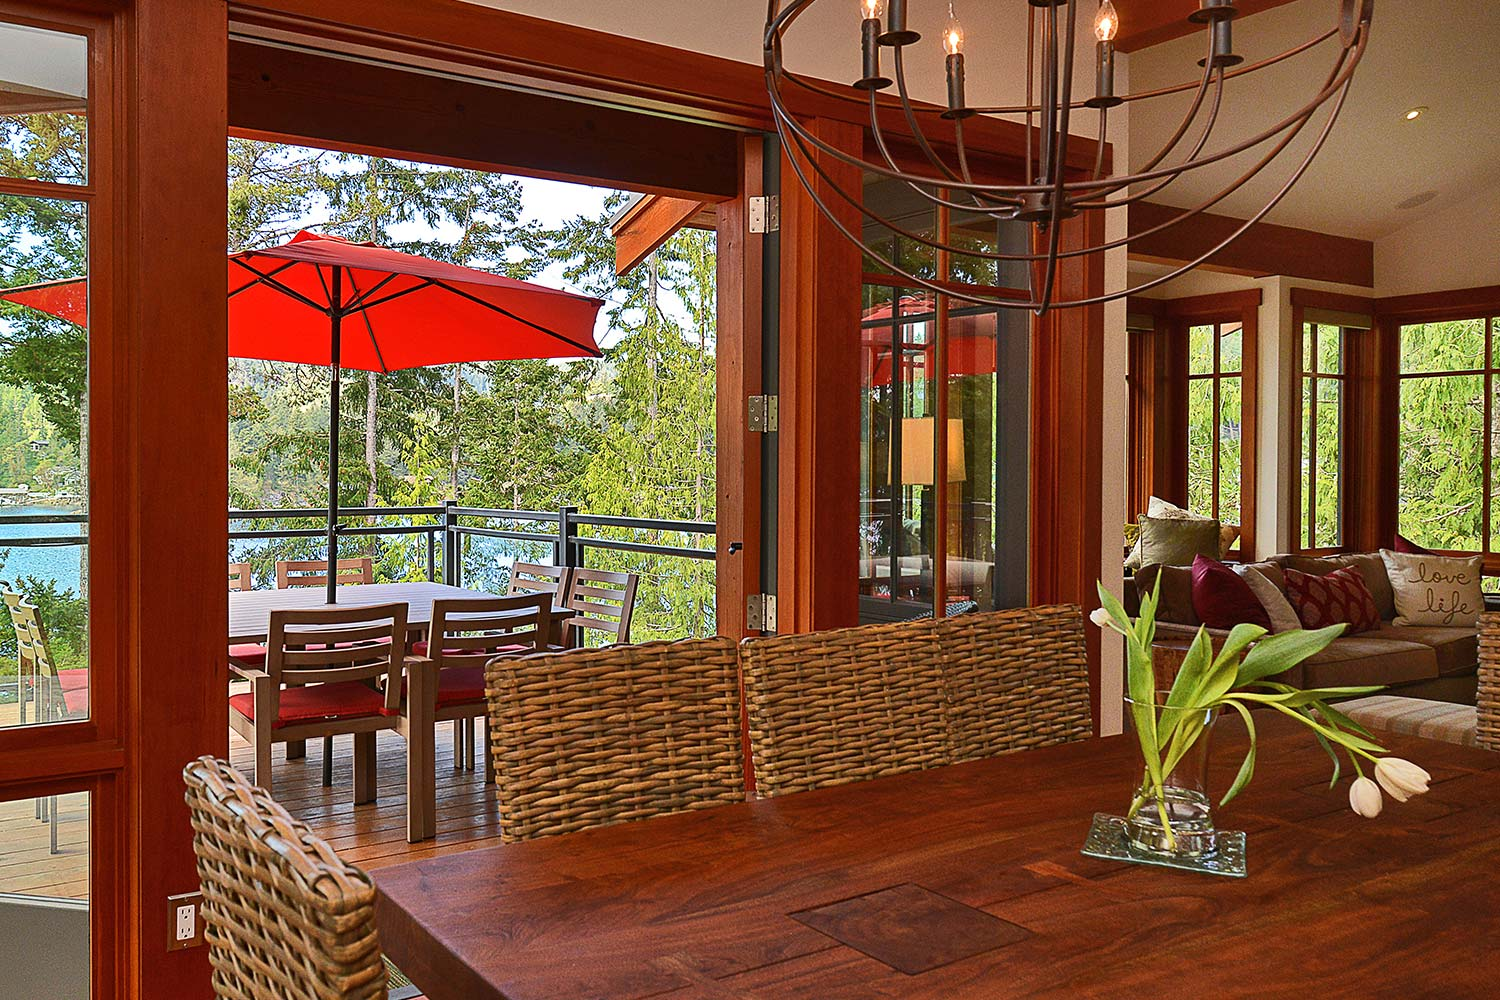 Both the dining room table and outdoor dining table of this oceanfront luxury vacation home can seat up to 8 people.